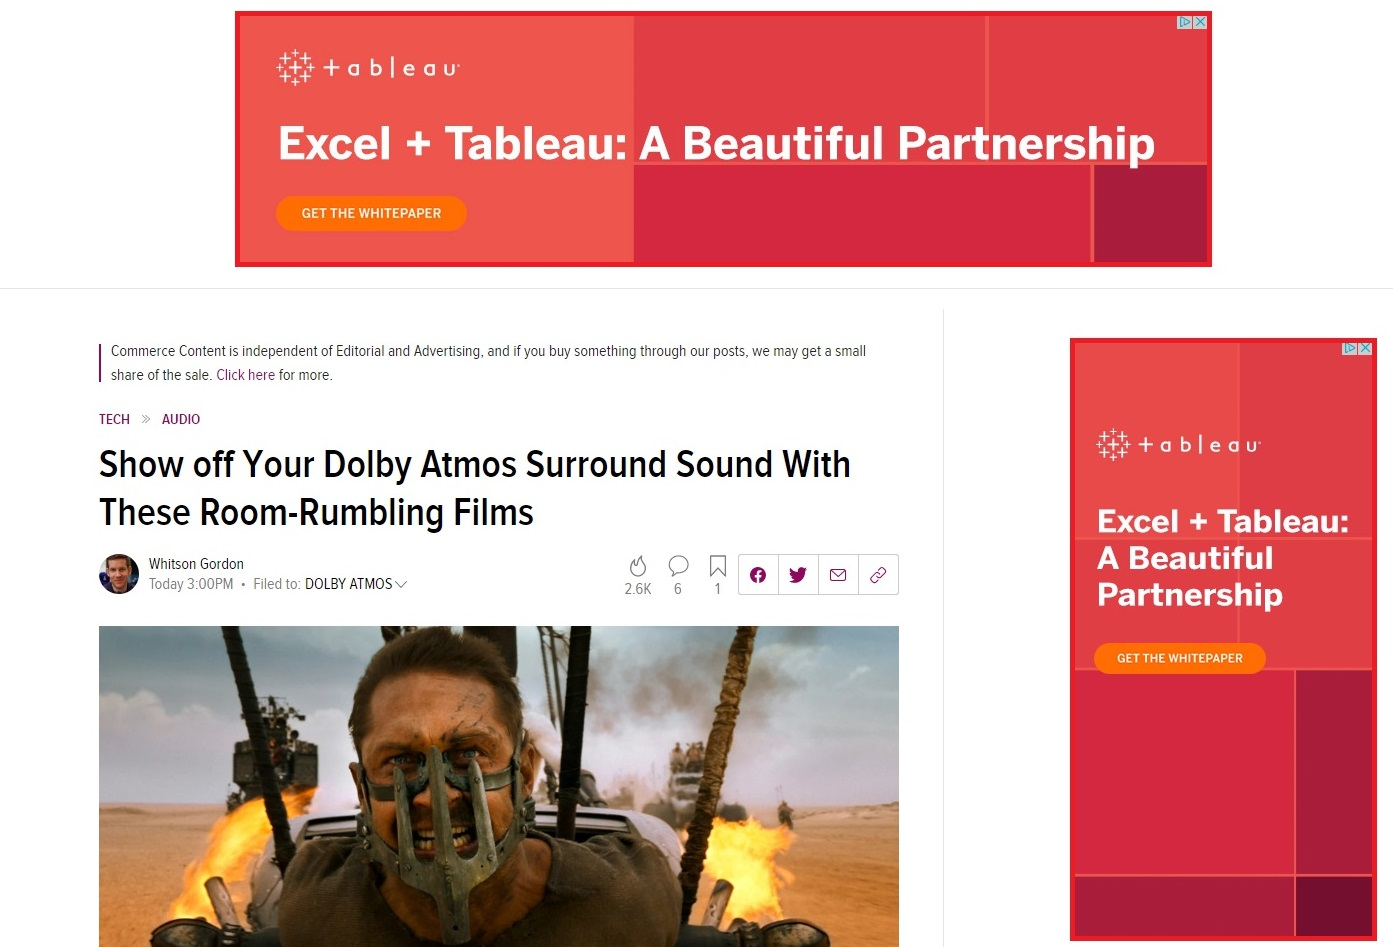 Two banner ad examples by Tableau